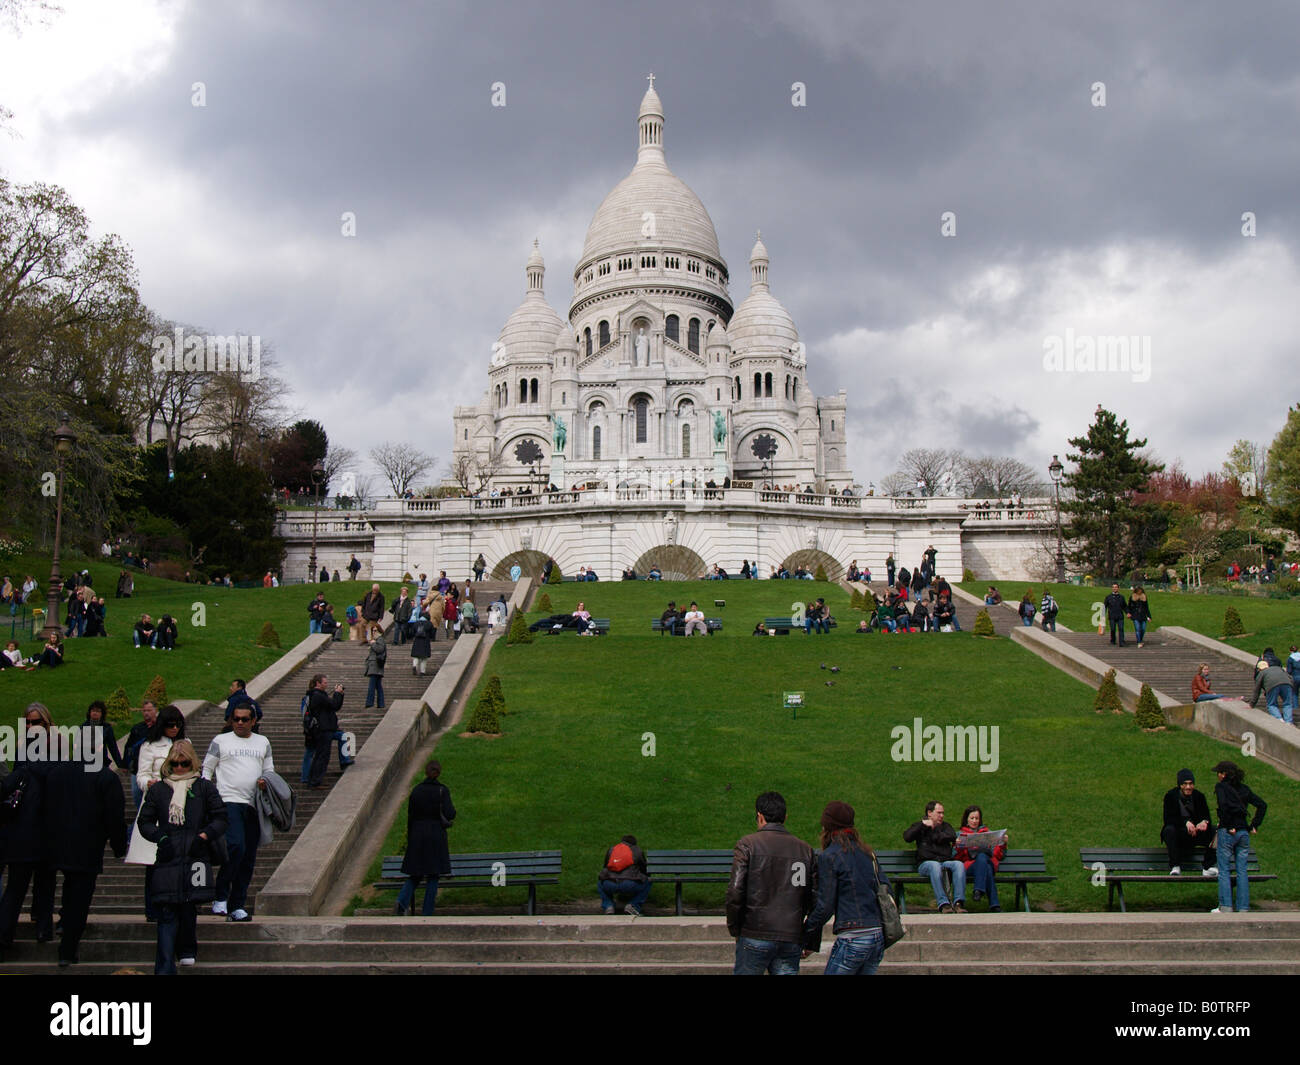 Sacre Coeur holy heart church in Montmartre Paris France with many people tourists on the steps and grass - Stock Image